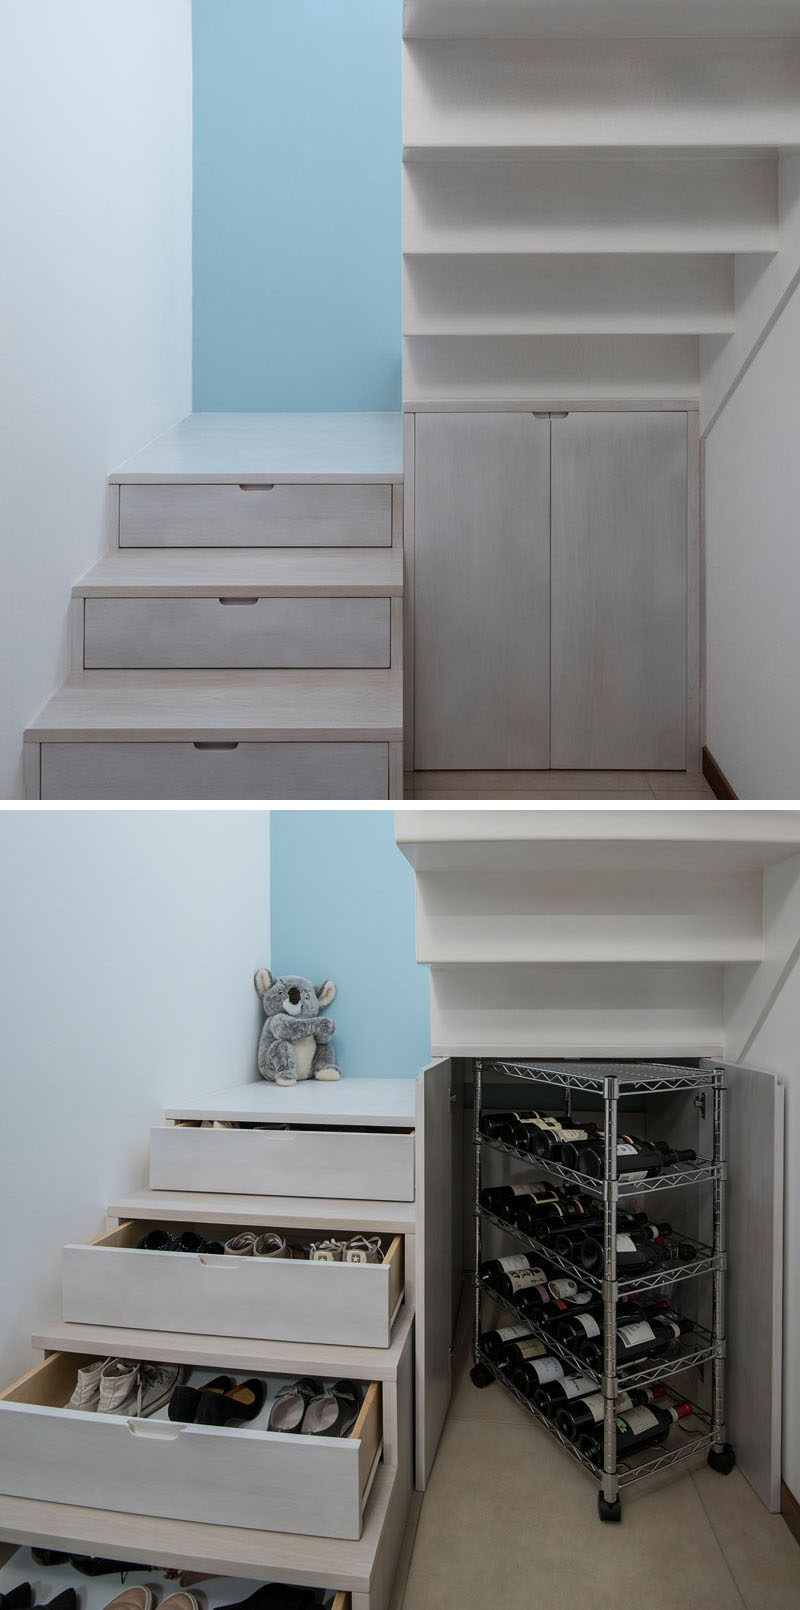 Stairs Design Idea - Hide Shoe And Wine Storage Within Your Stairs & Stairs Design Idea - Hide Shoe And Wine Storage Within Your Stairs ...